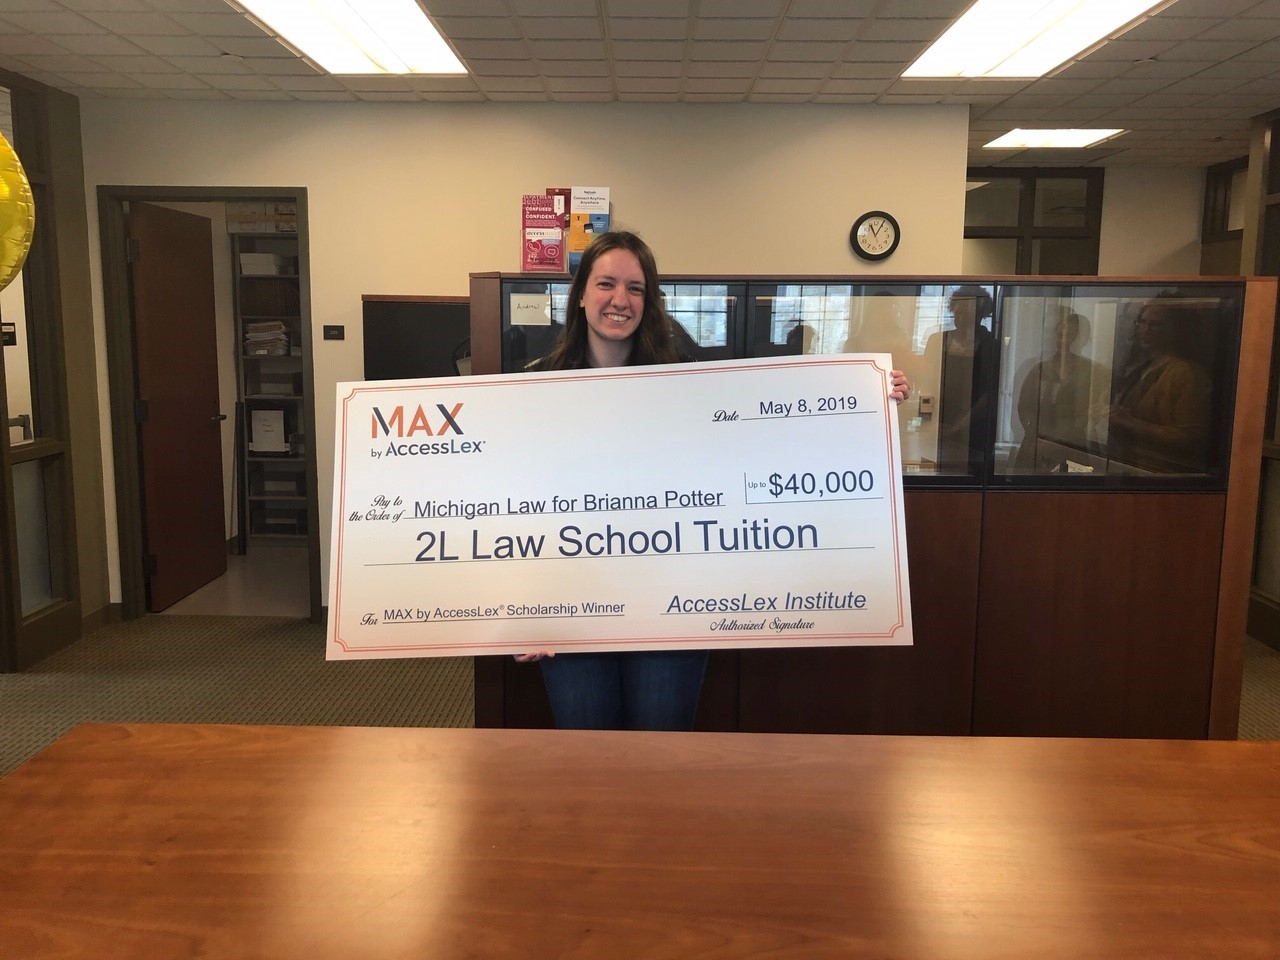 MAX Grand Prize Scholarship Winner Brianna Potter